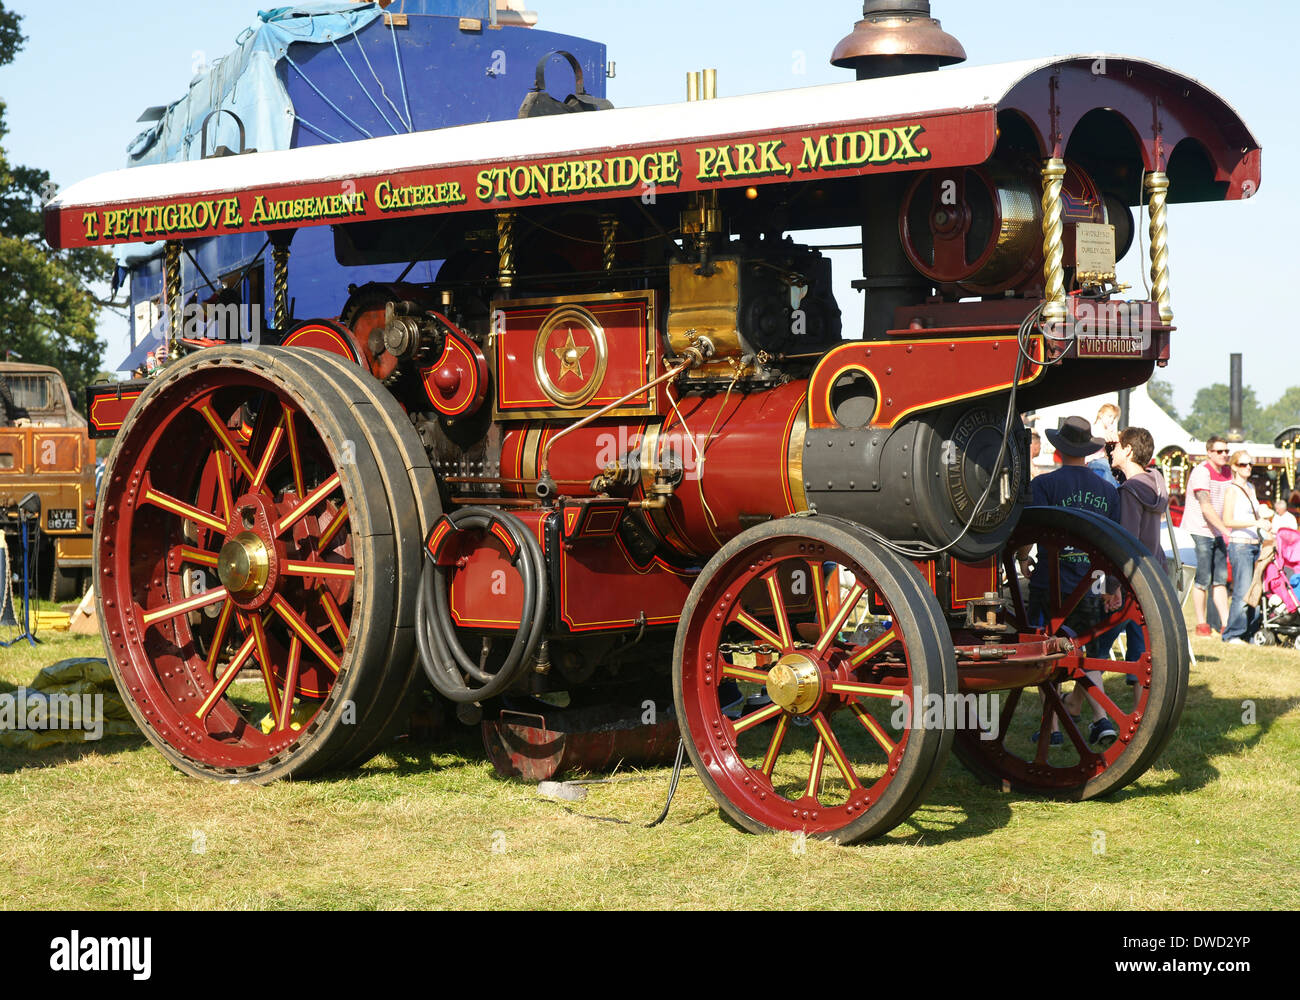 1920 Steam traction engine built by William Foster of Lincoln called Victorious which is a  Showmans road locomotive No. 14501 - Stock Image